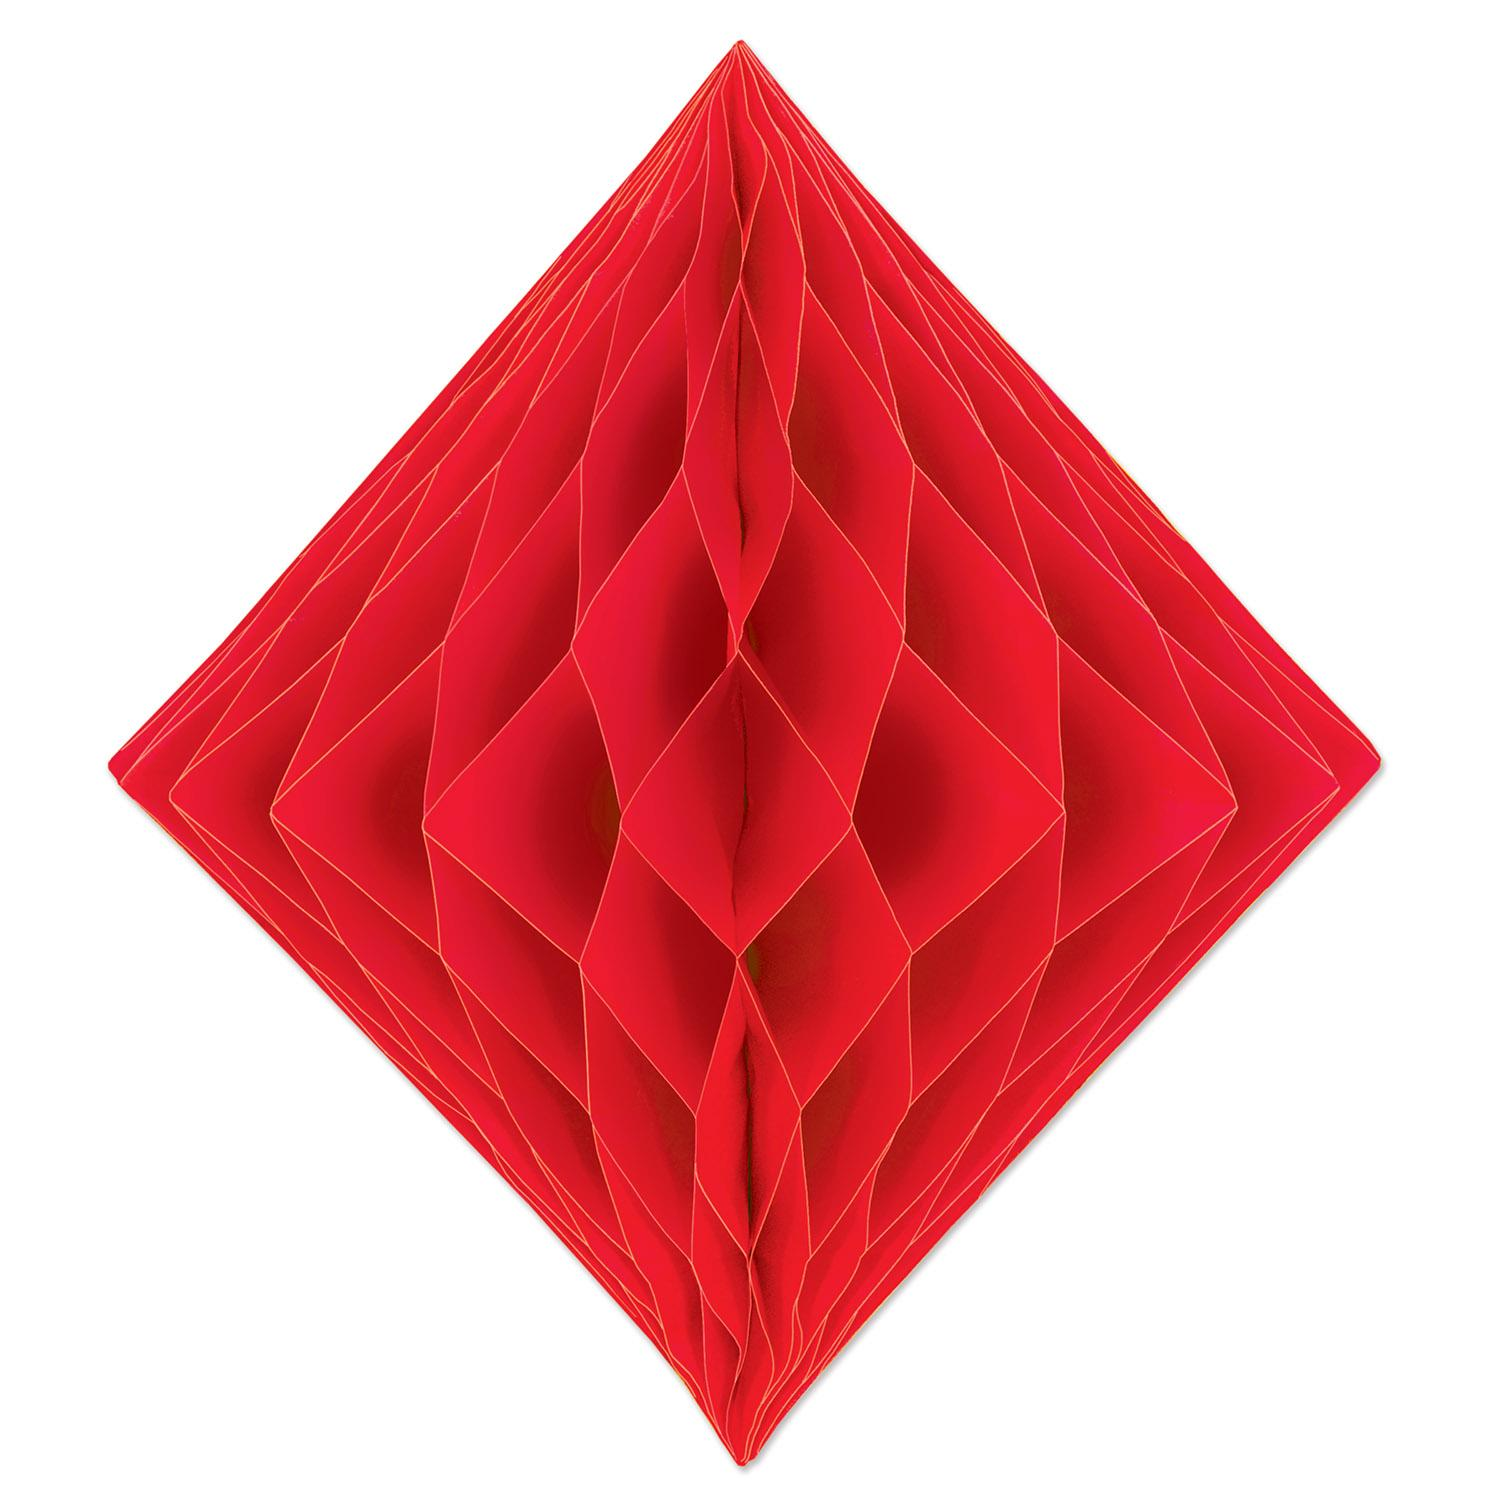 Club Pack of 12 Honeycomb Vibrant Red Diamond Hanging Decorations 12.5""